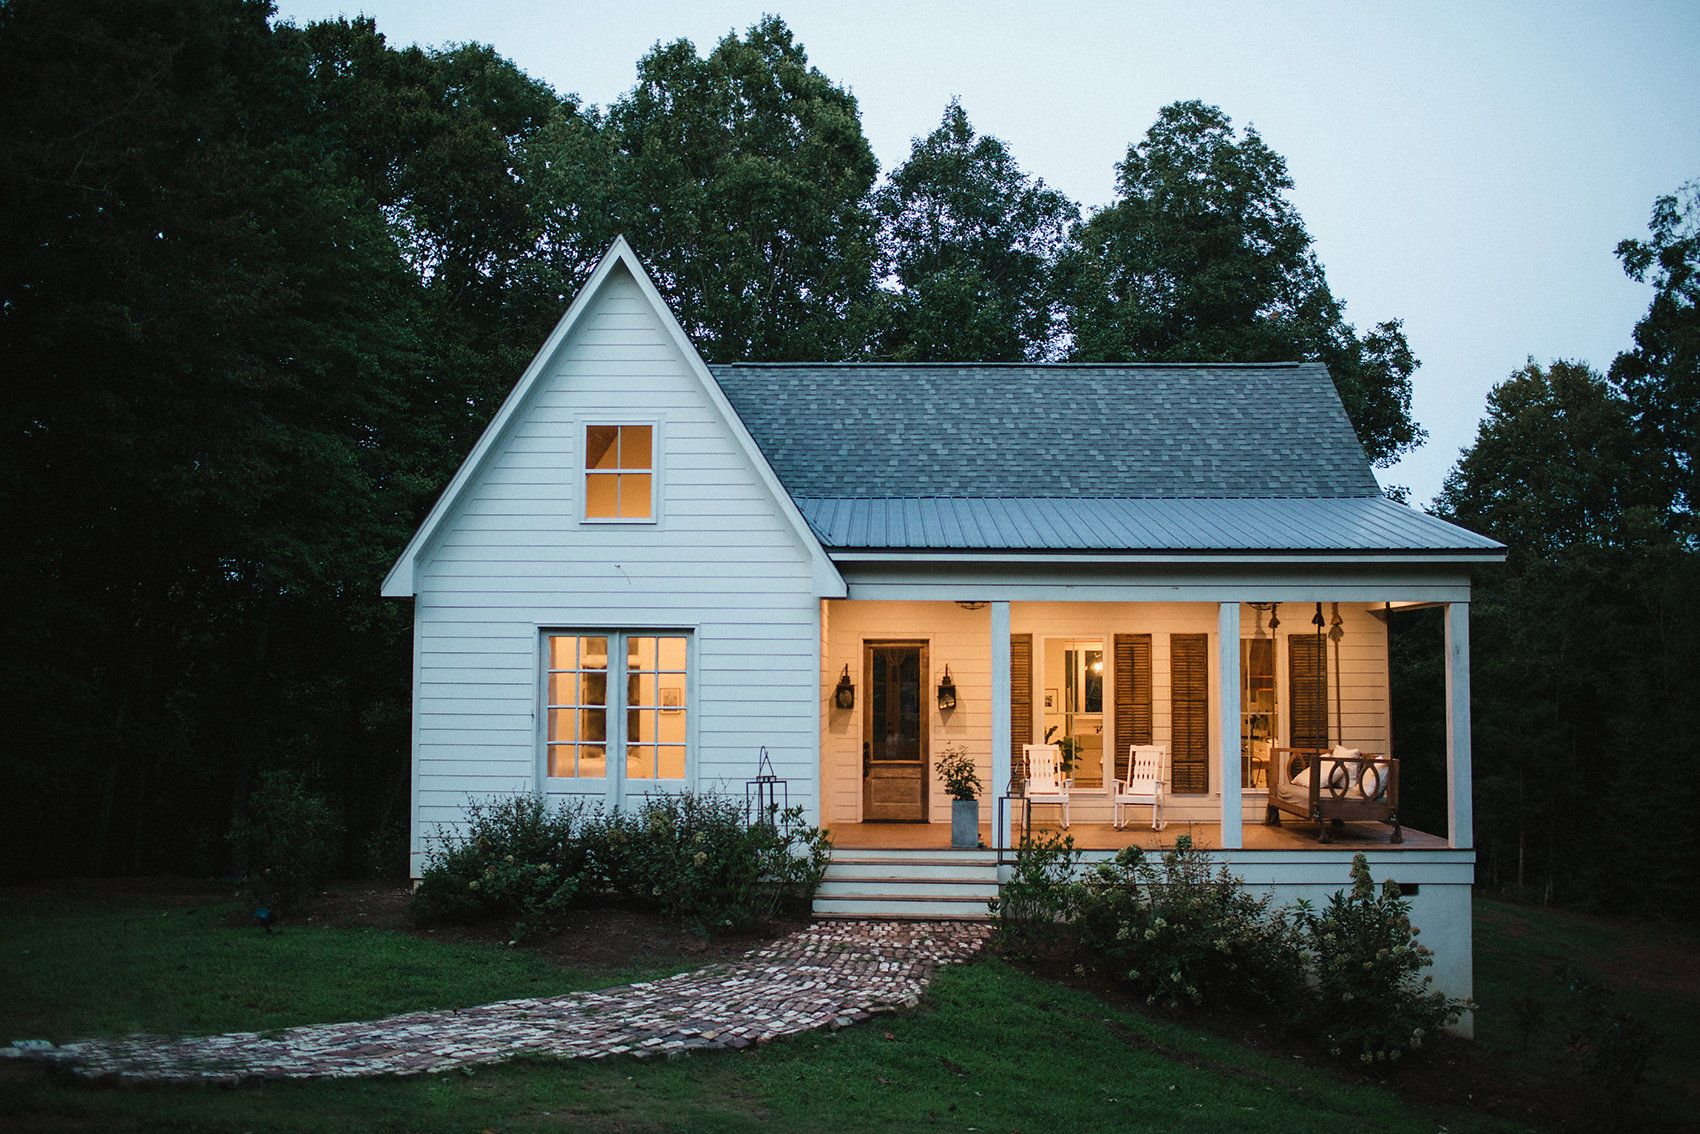 outdoor design ideas, hood design ideas, house restaurant ideas, house exterior construction, house with exterior stone veneer, house beautiful home, plumbing design ideas, house exterior furniture, travel design ideas, crafts design ideas, history design ideas, house with stone exterior siding, house floor plan names, stone design ideas, haircuts design ideas, house exterior remodeling before and after, house exterior eagle, sheds design ideas, interior design ideas, house exterior decorating, on old house exterior design ideas